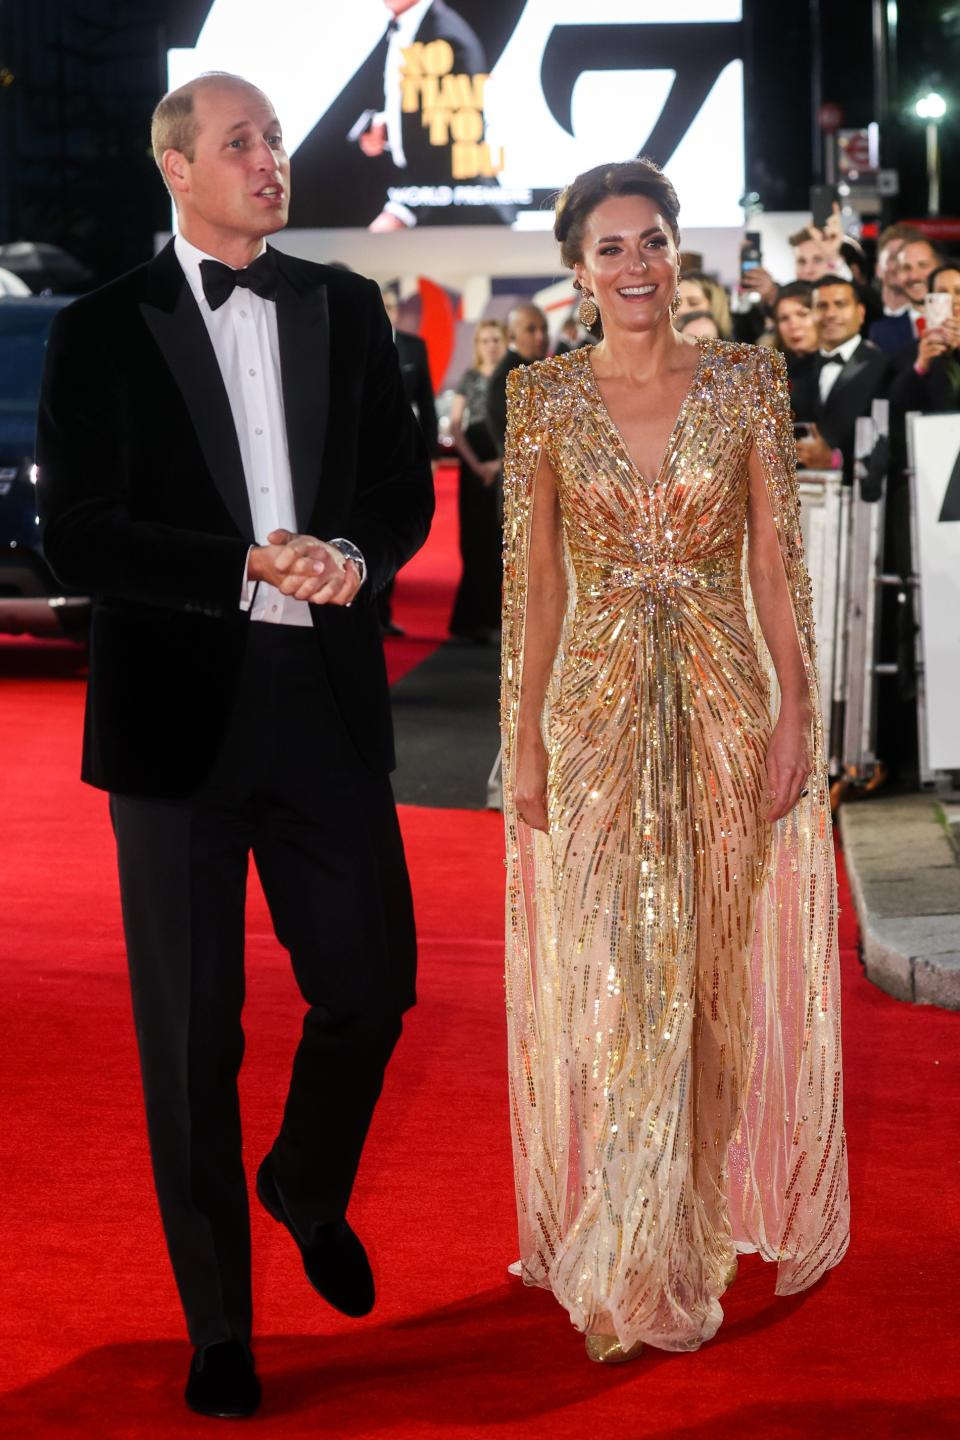 Kate Middleton wore a gold Jenny Packham dress to the premiere of